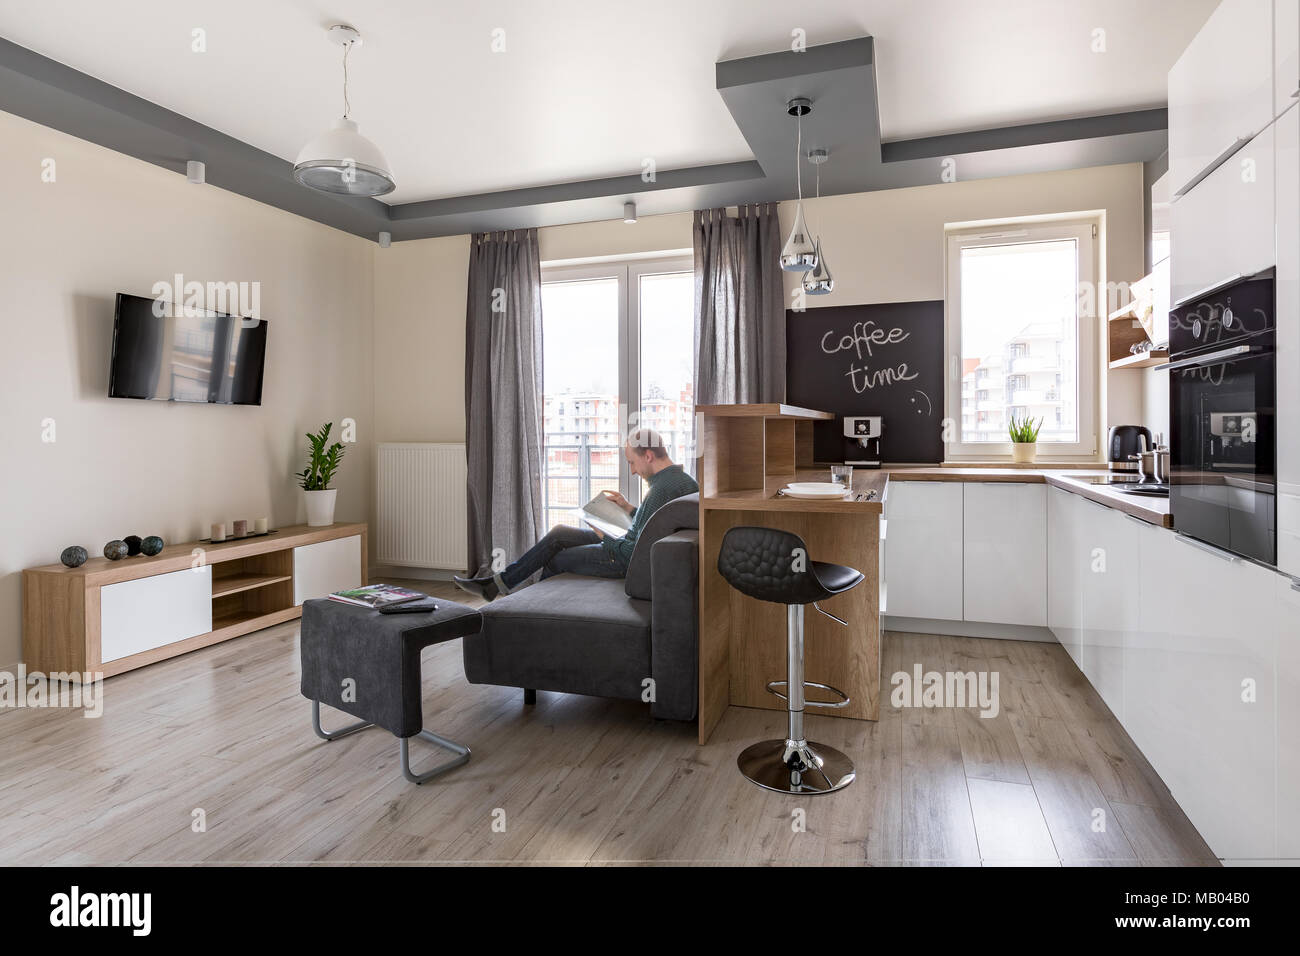 Functional And Contemporary Living Room With Kitchen Combined Stock Photo 178868340 Alamy